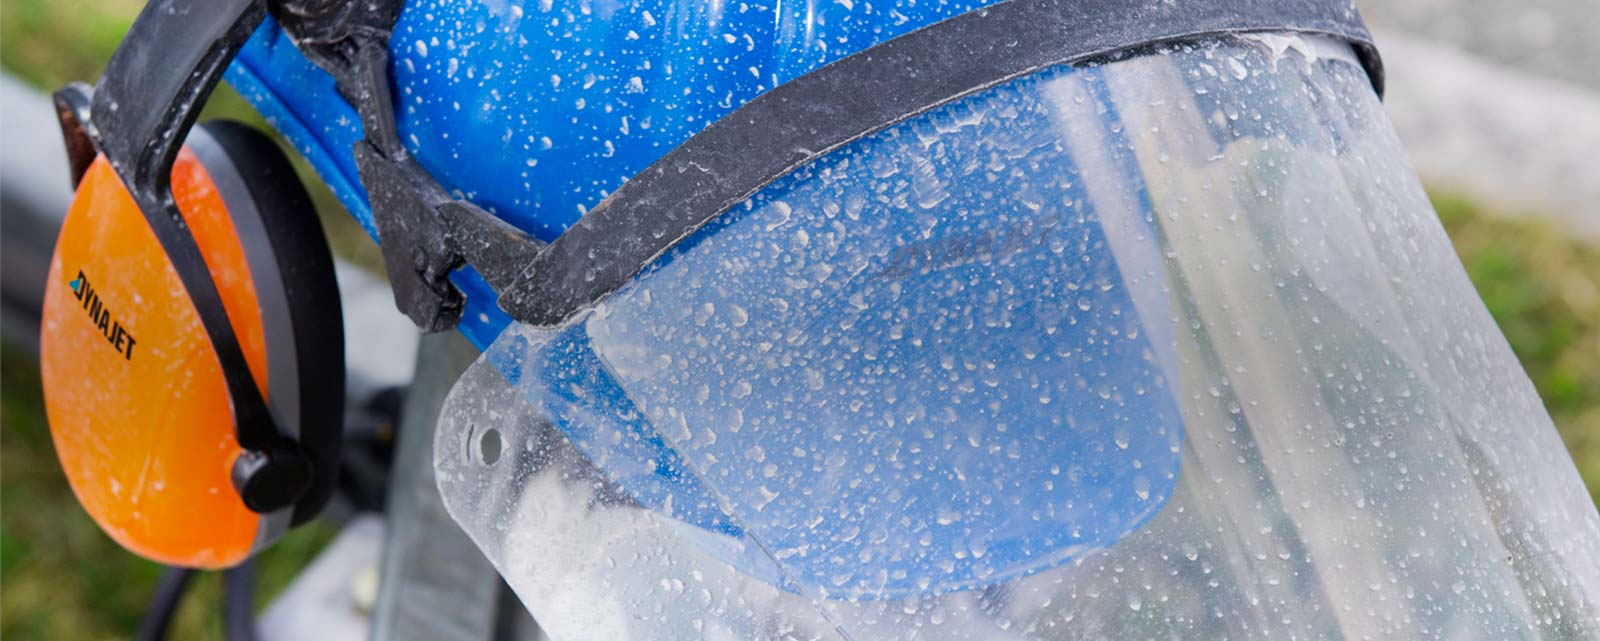 High-pressure water jetting can be dangerous. We recommend that you always wear personal protective equipment (PPE) when working to minimise the risk of injury.